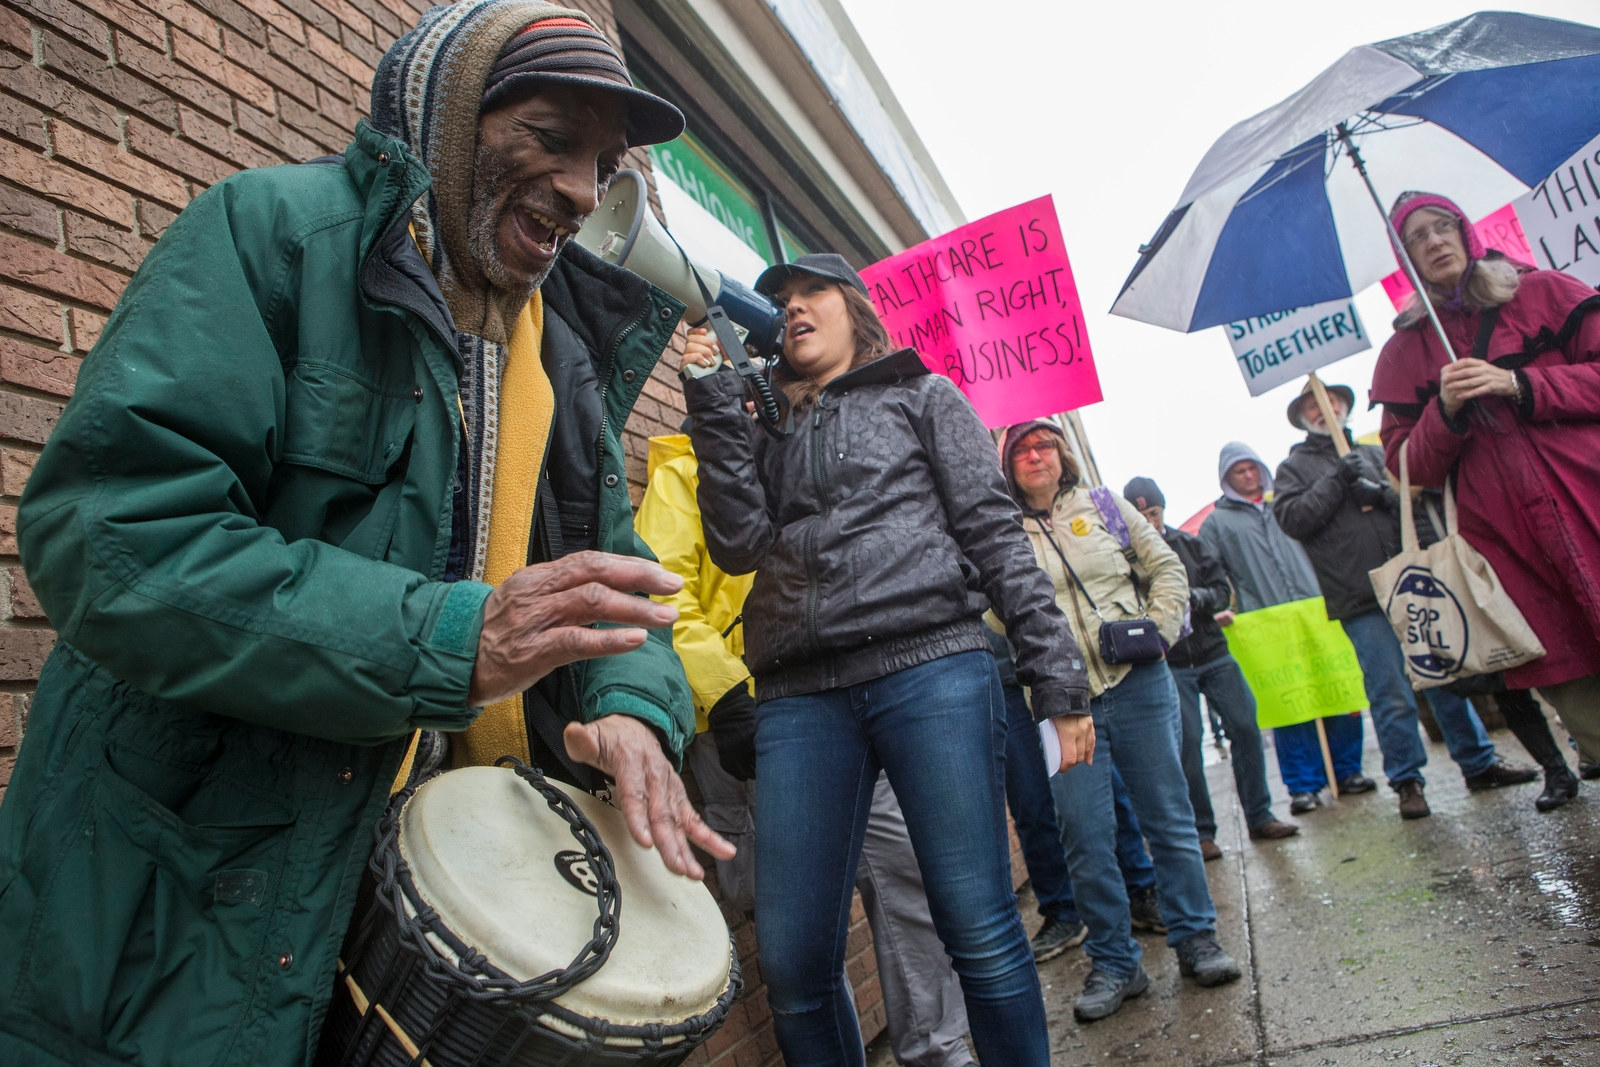 Ismail Johnson keeps the beat on his djembe as Theresa Joy uses the megaphone to lead chants during a stop outside the West Side Bazaar as protesters participate in the Immigrants Solidarity March on Grant Street.